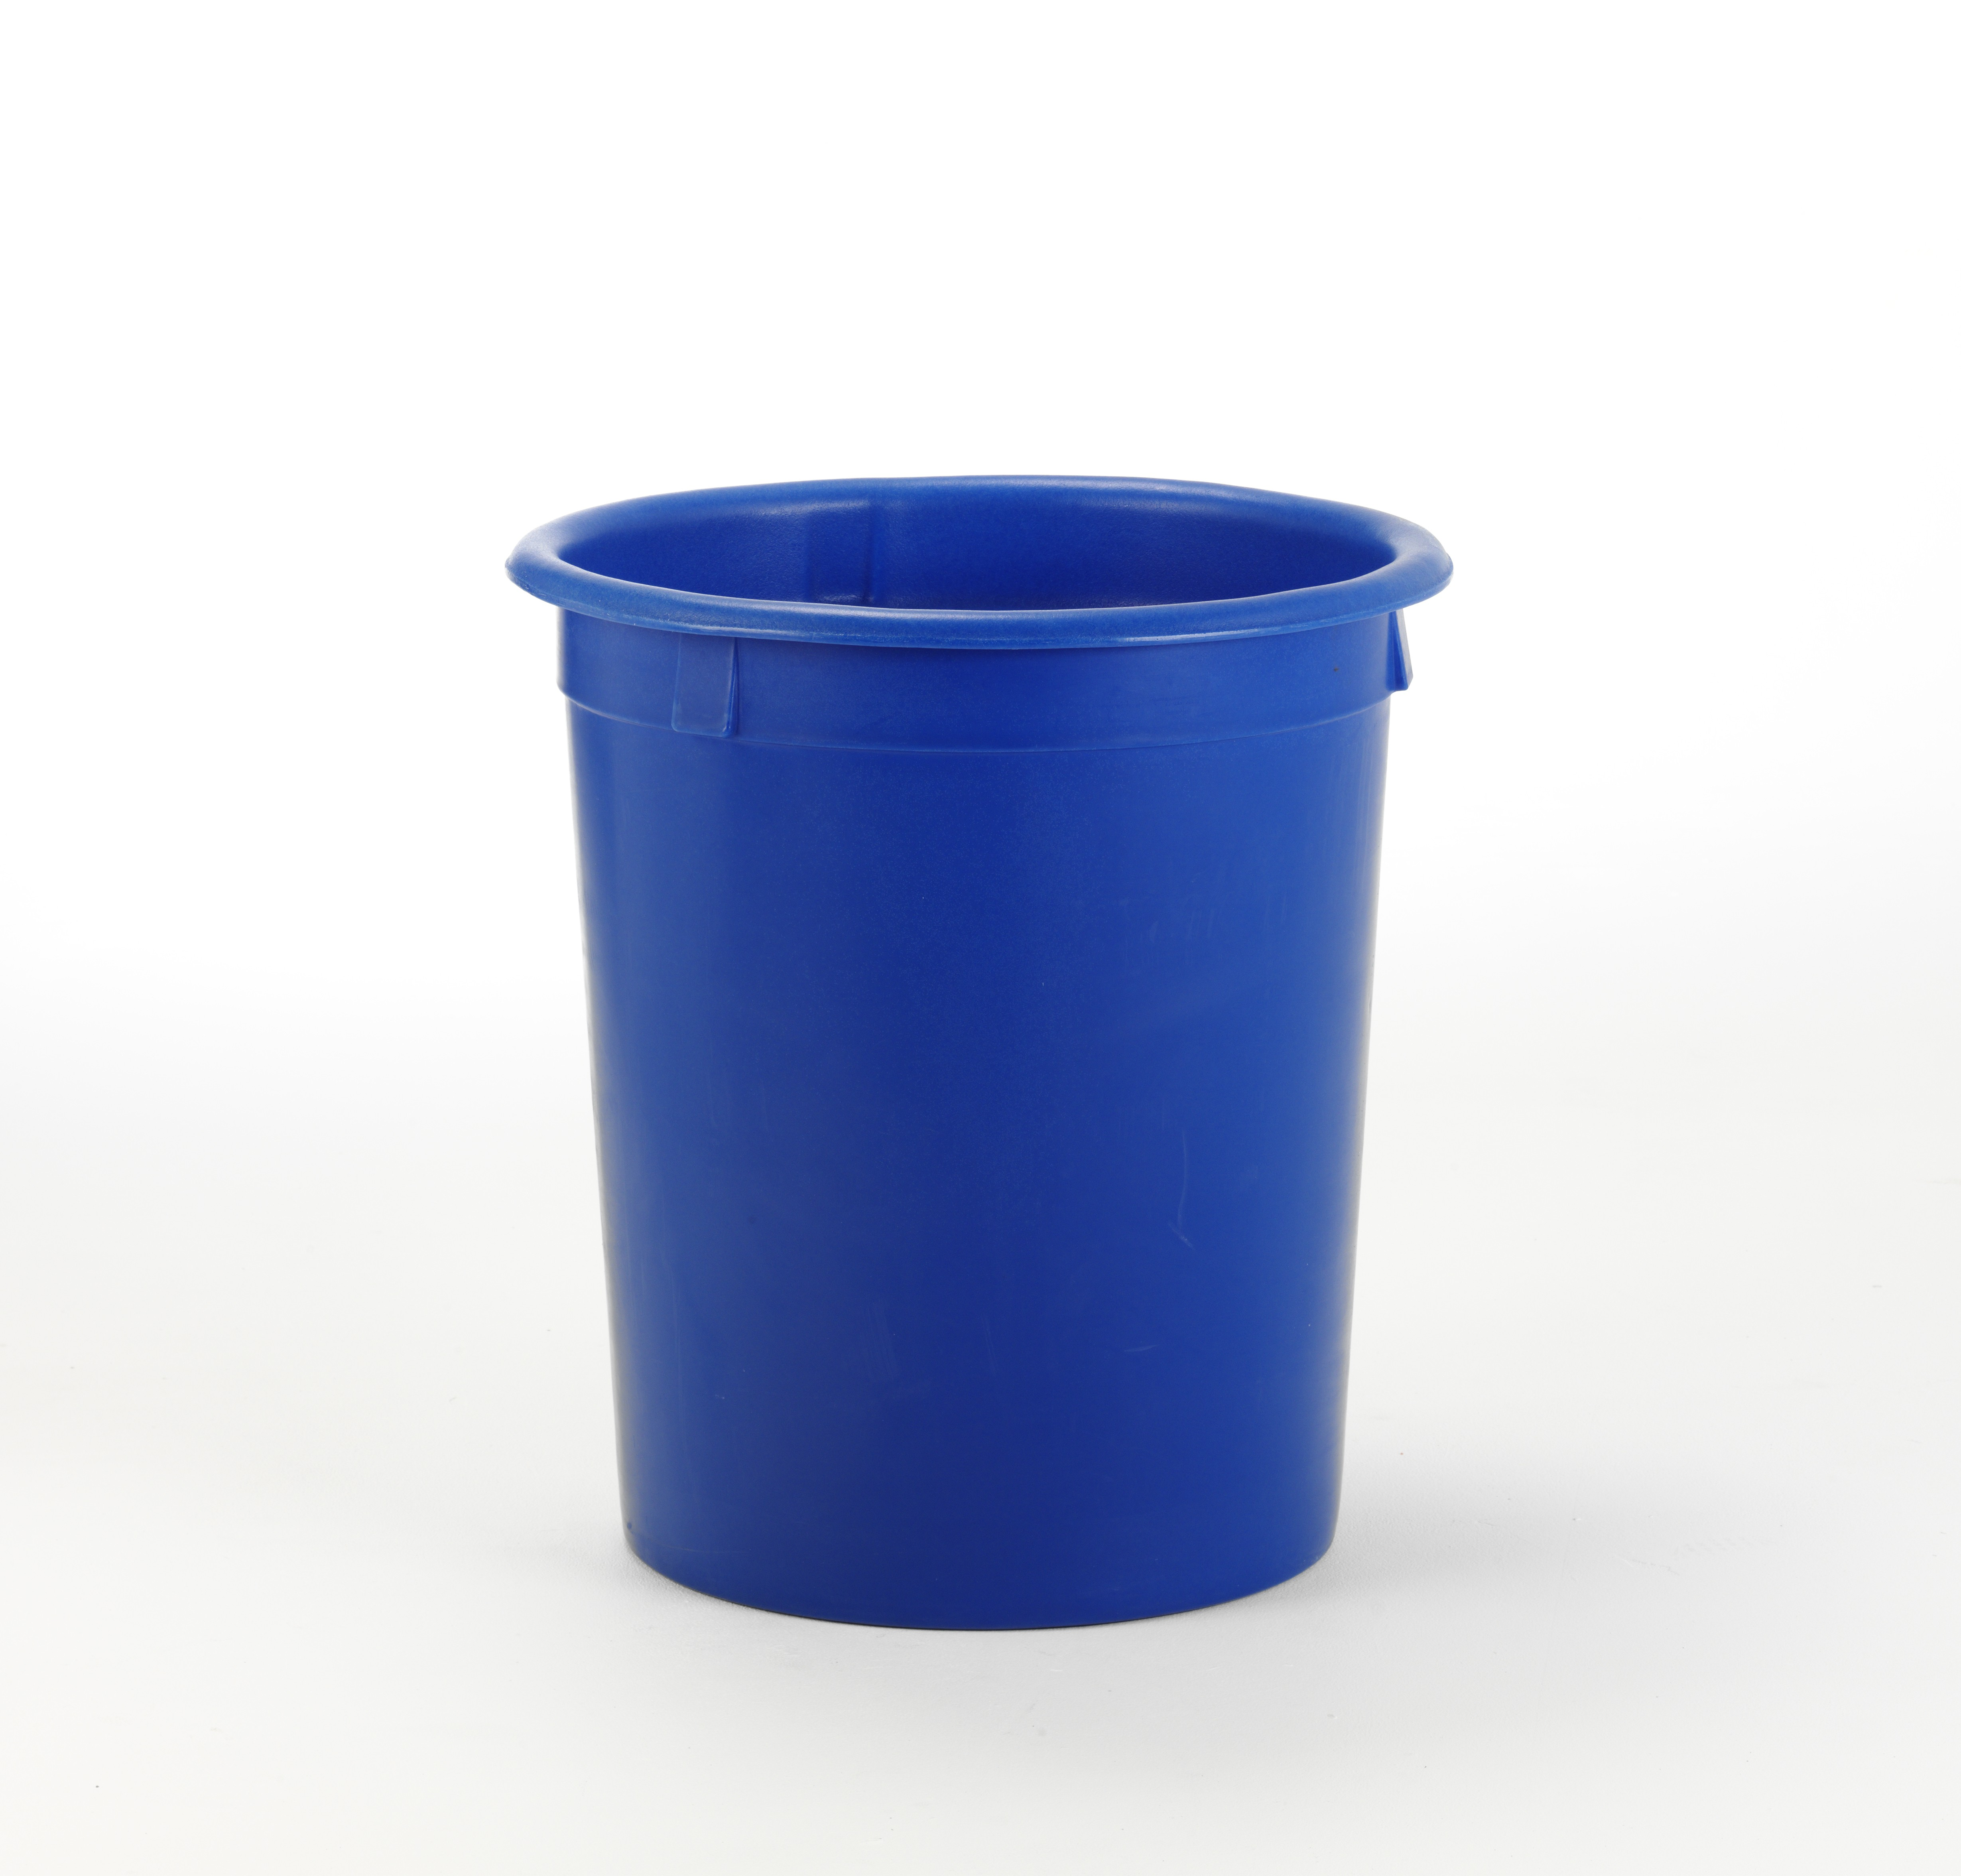 Moulded Tapered Bins - Plastic Tapered Tubs - Round Plastic ...